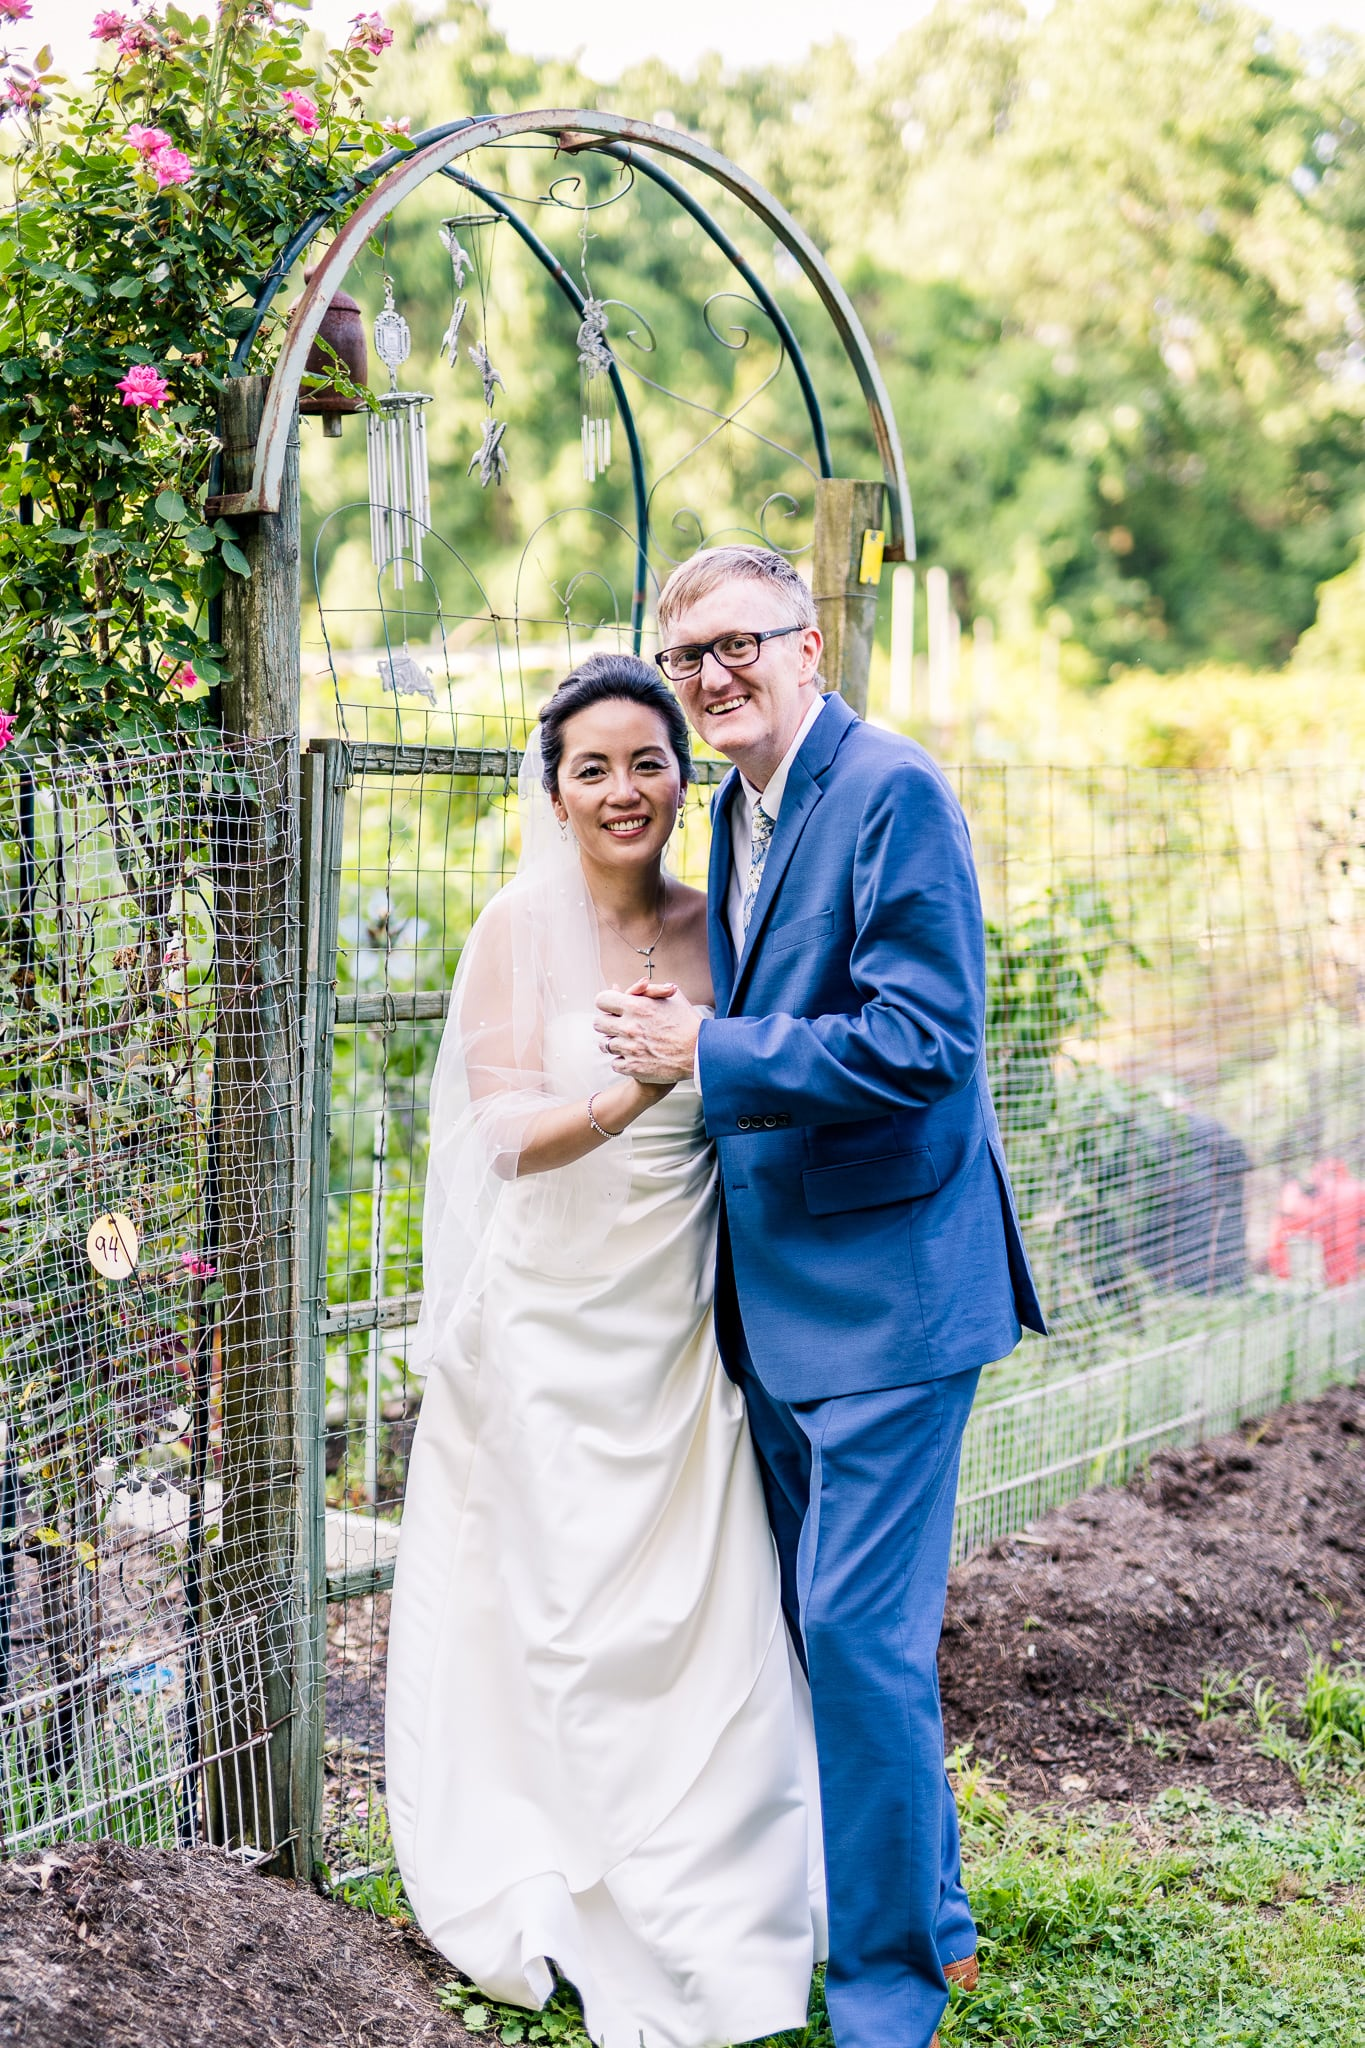 A Taiwanese bride poses with her groom in the community gardens at Nottoway Park after their wedding in Vienna, Northern Virginia